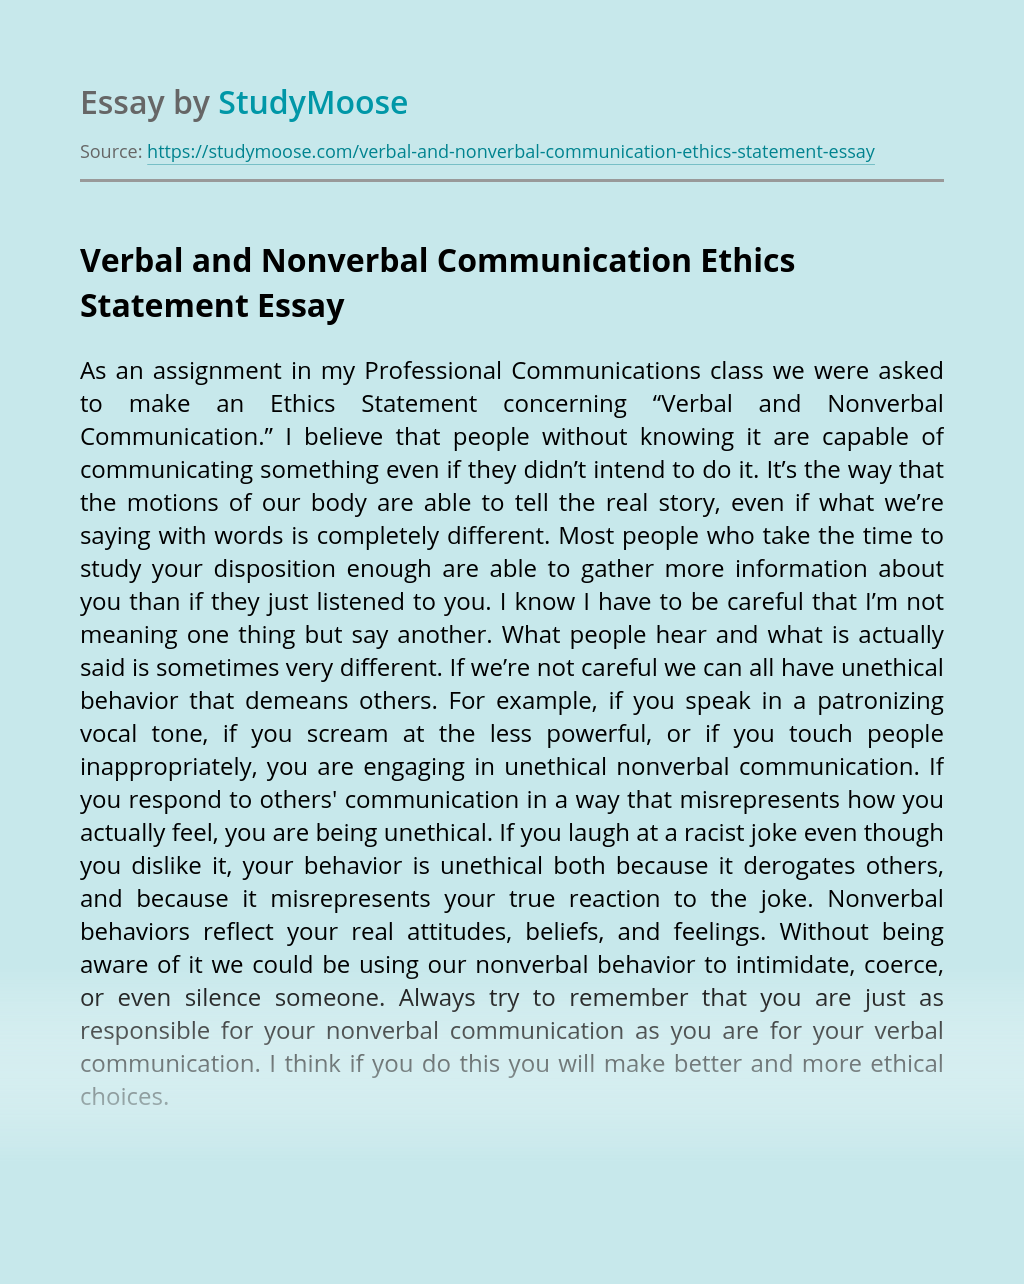 Verbal and Nonverbal Communication Ethics Statement